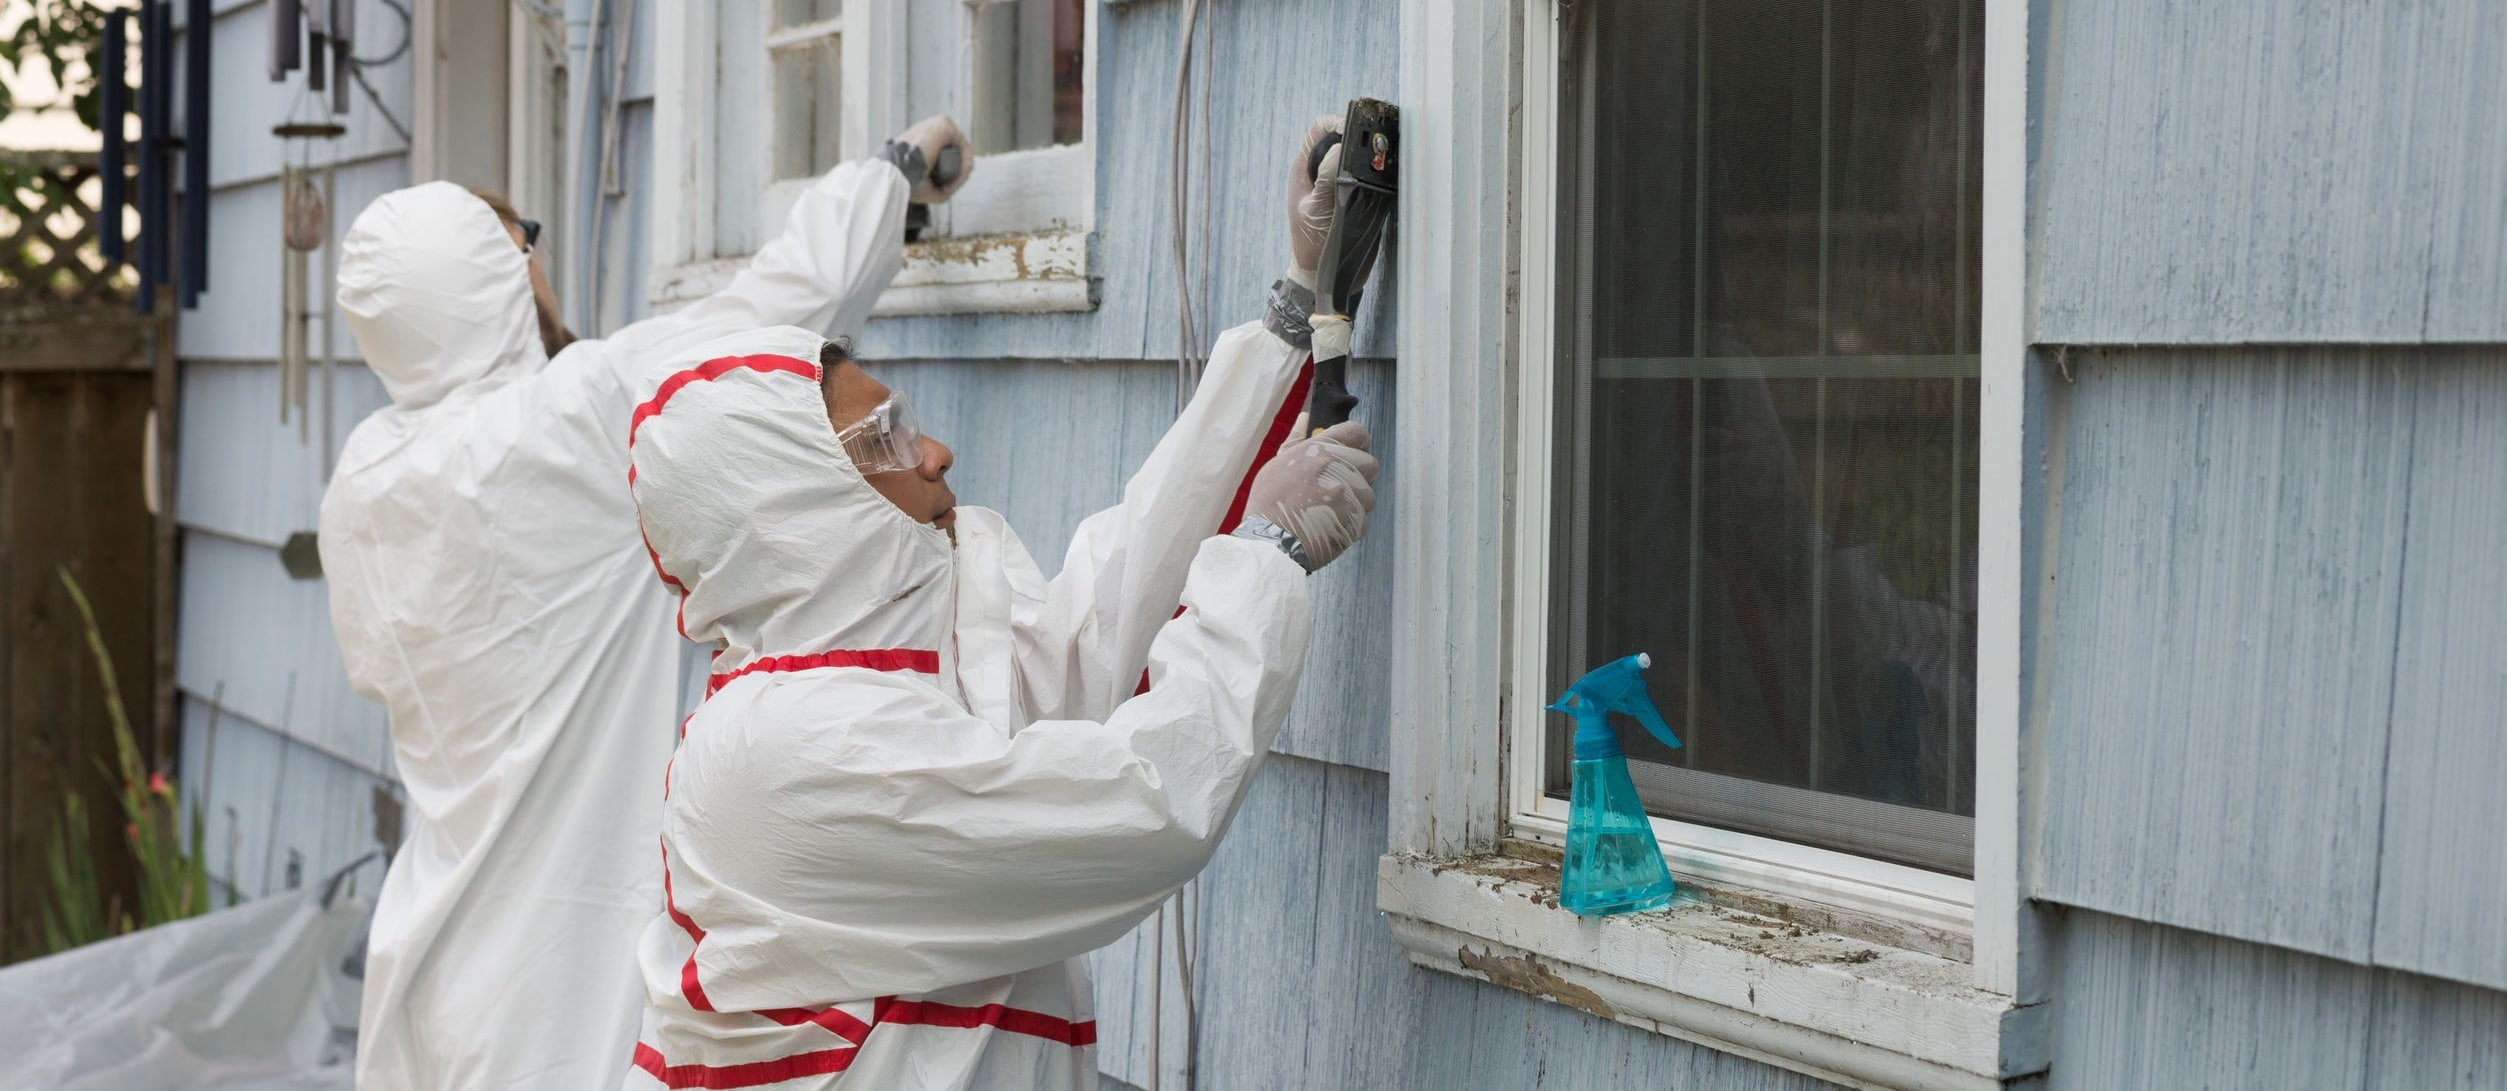 Two house painters in hazmat suits removing lead paint from an old house